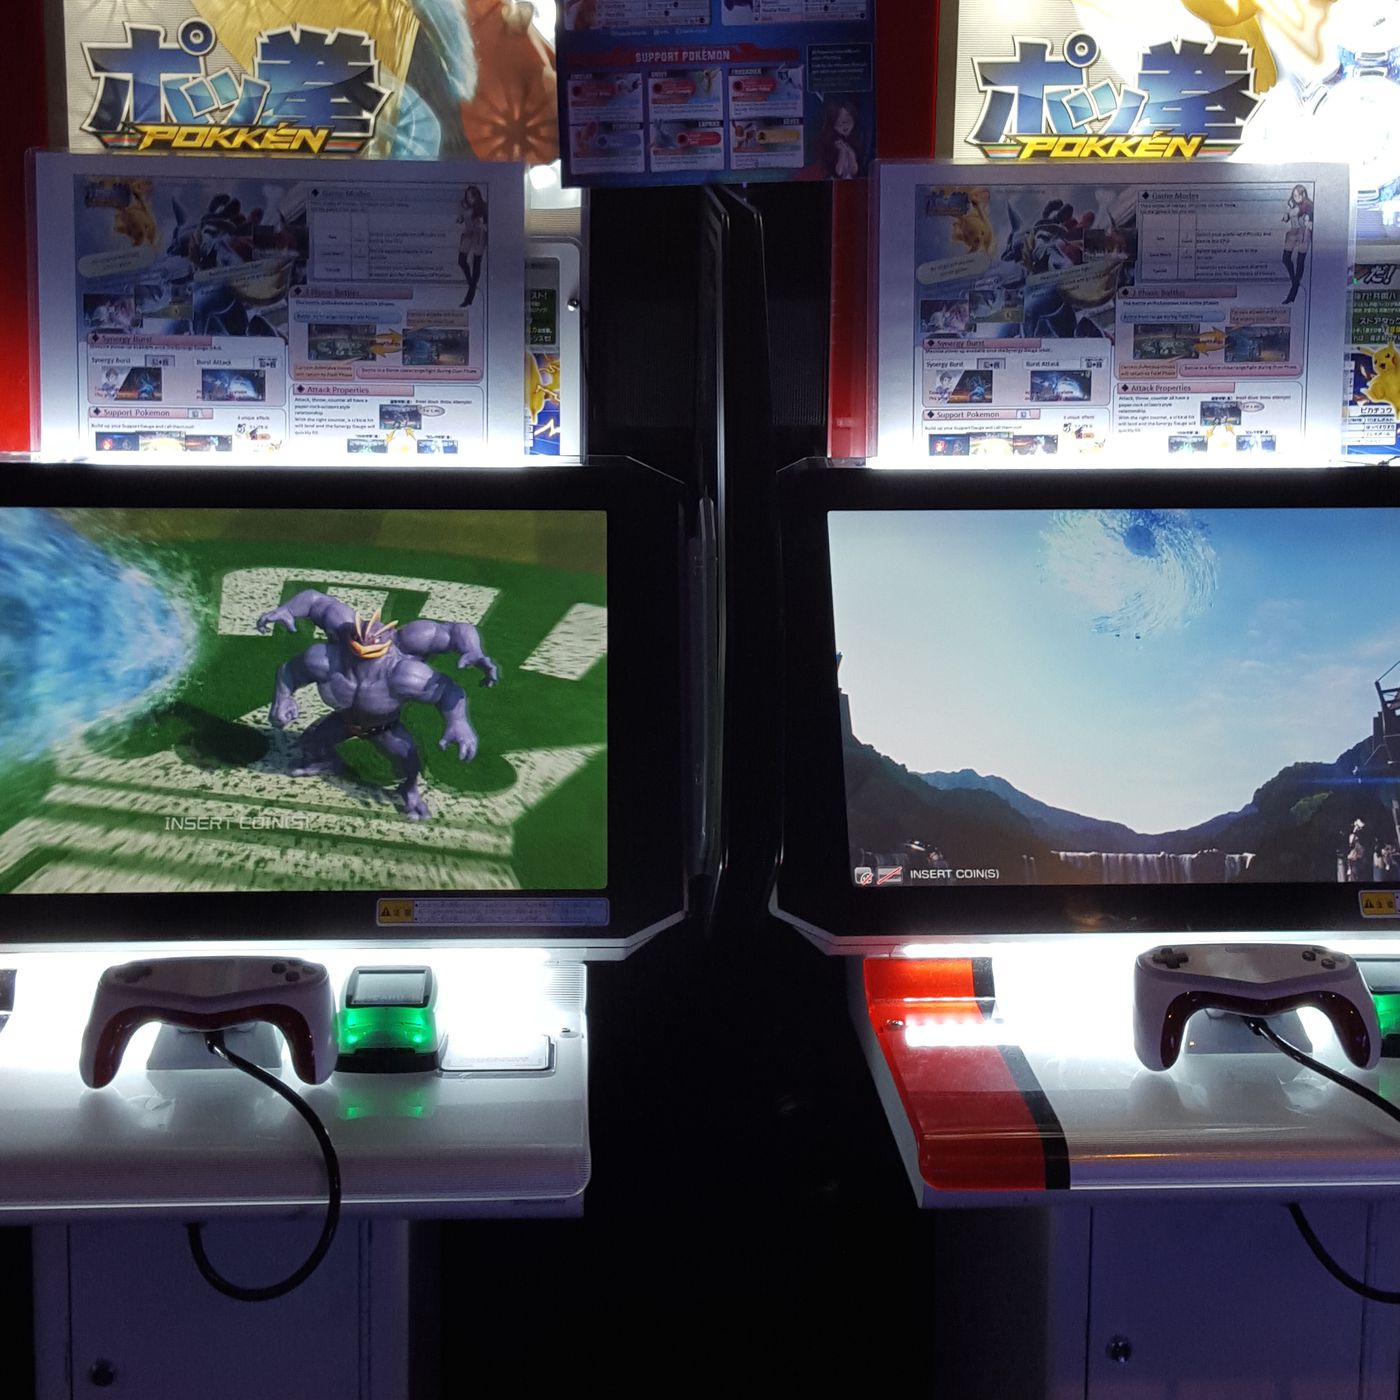 Pokémon meets Tekken in this new arcade machine you may